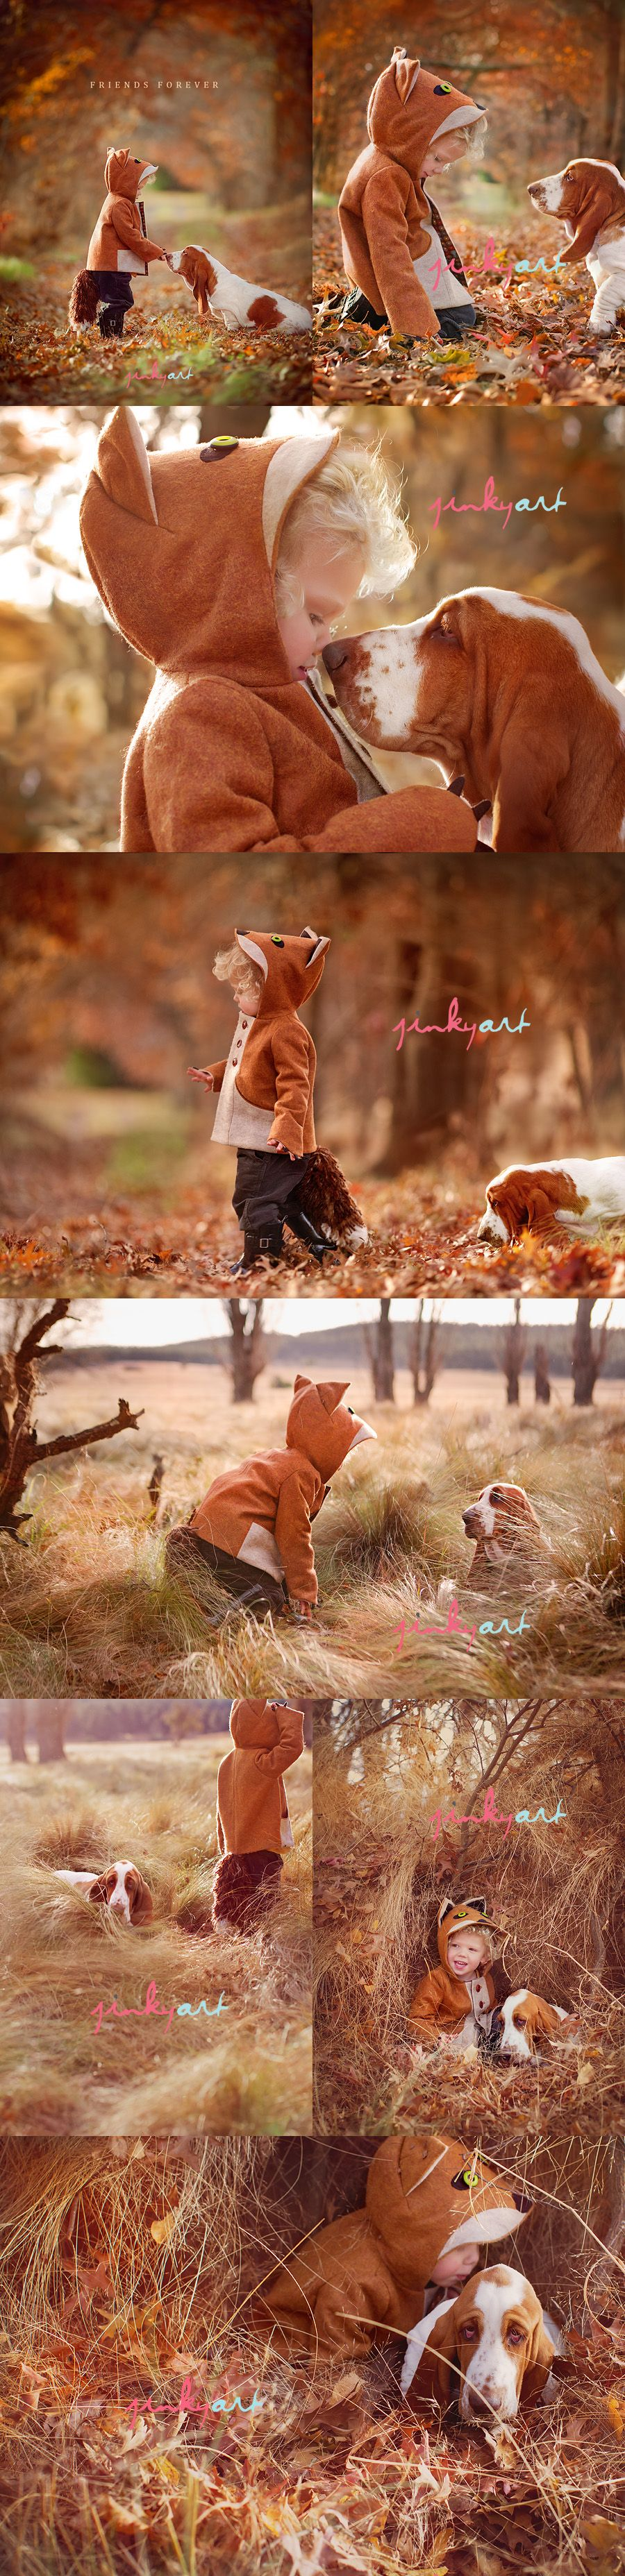 Ridiculously cute concept!! Love this photographer's creativity!